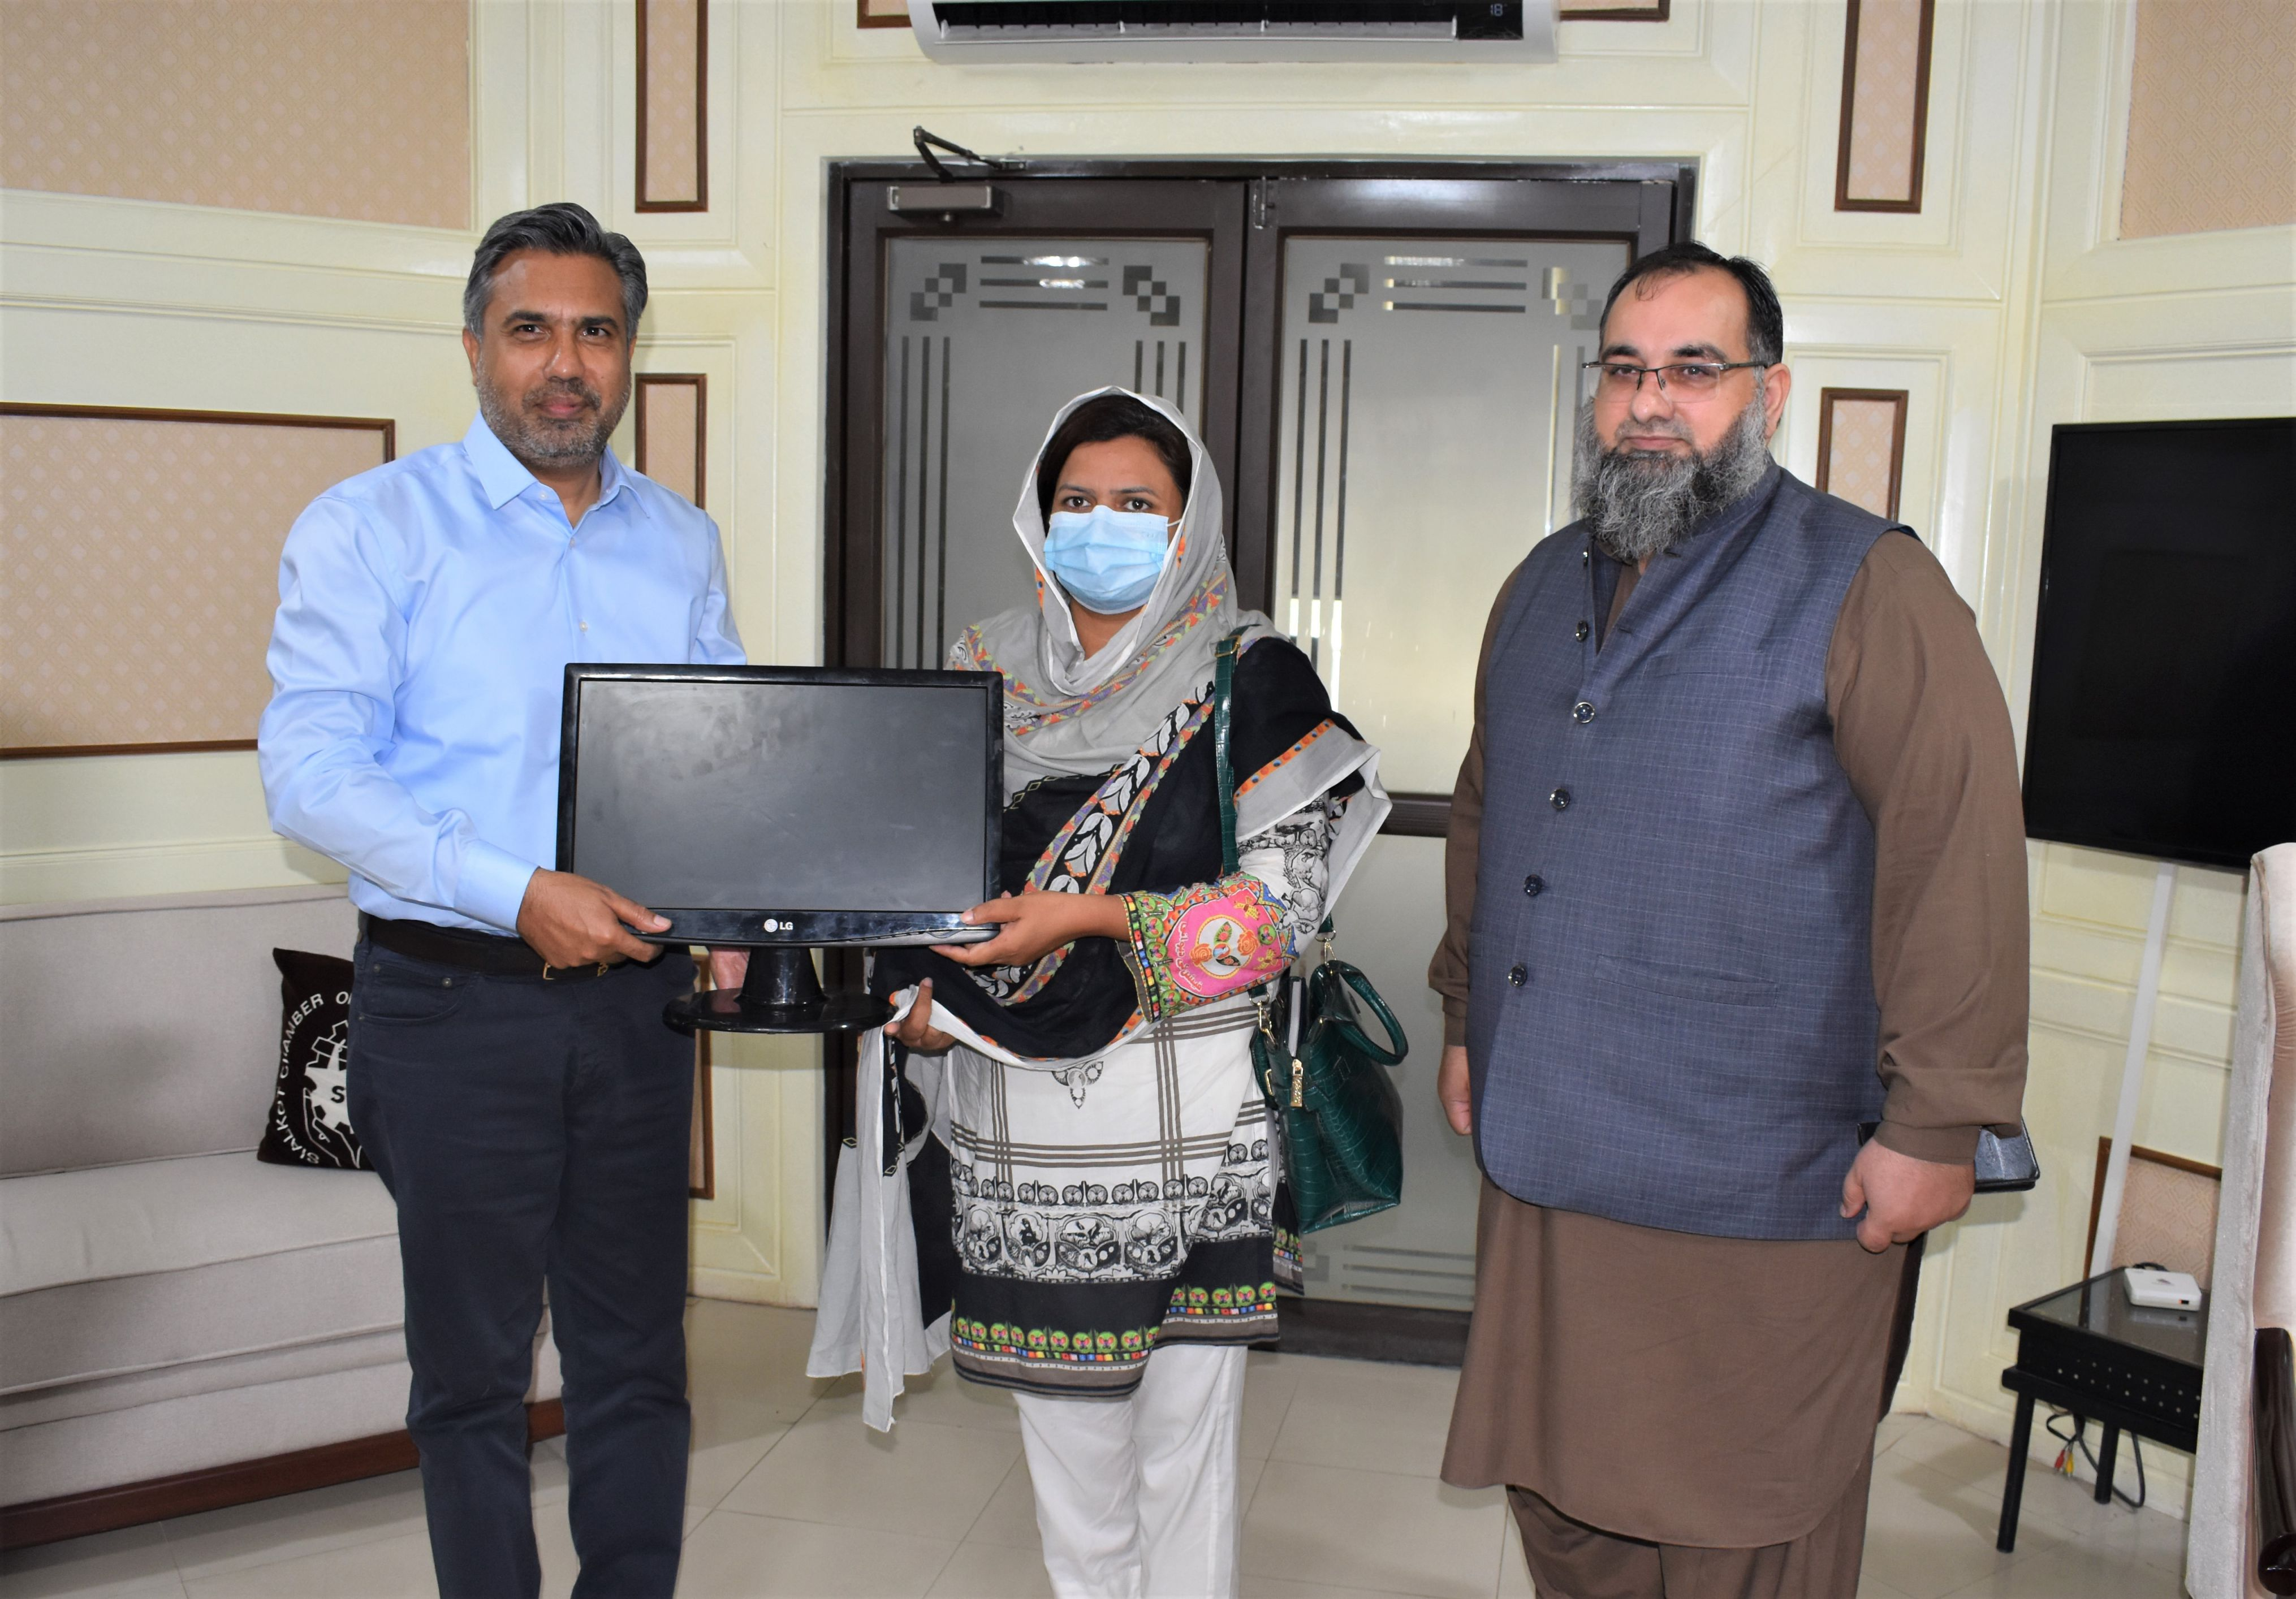 On September 14, 2021, Sialkot Chamber of Commerce & Industry contributed Computer Systems for IT Lab in  Govt. High School, Dait Sialkot.